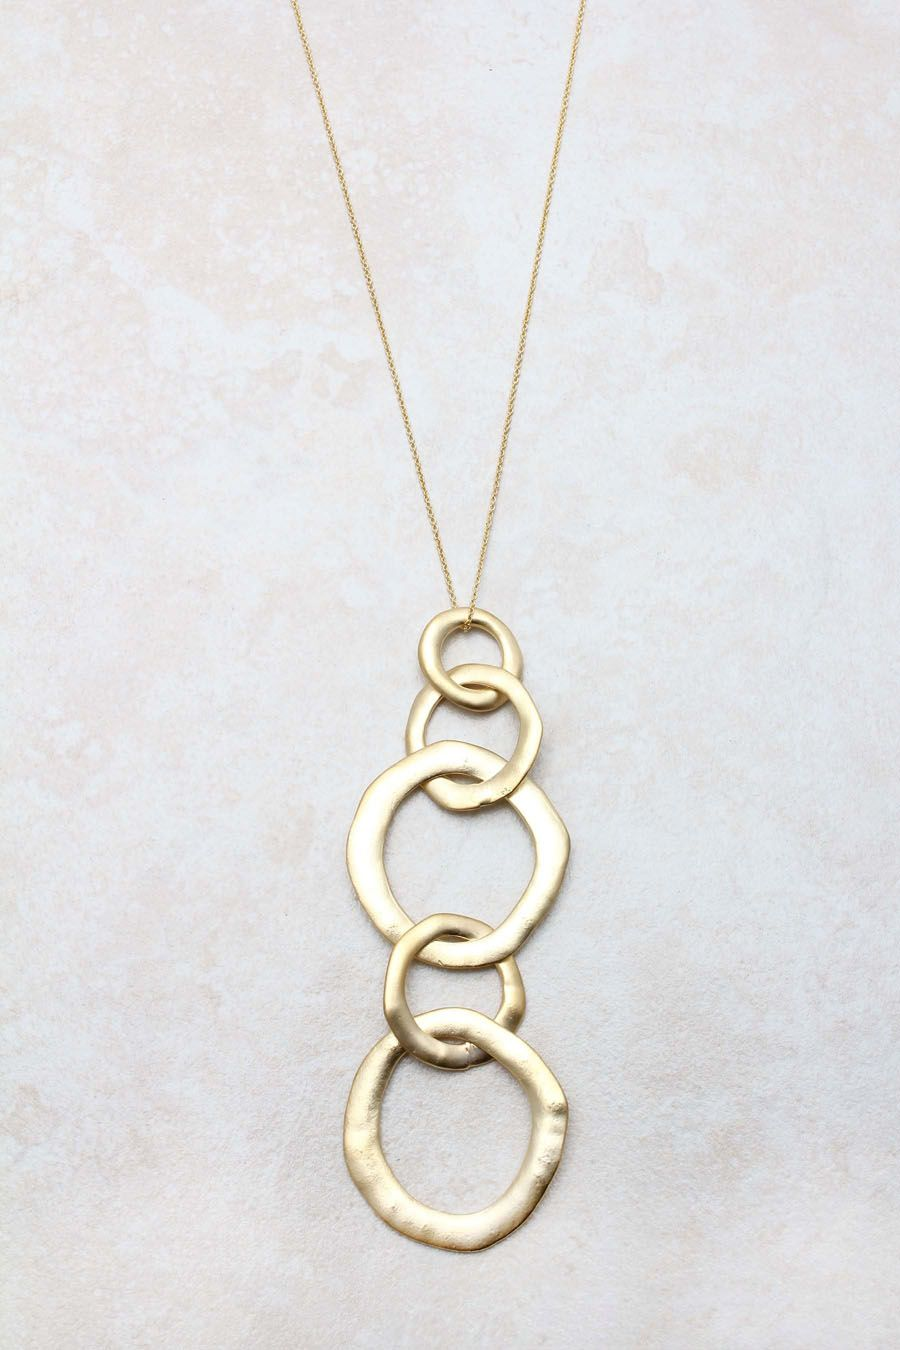 Golden link necklace wantful things pinterest fashion